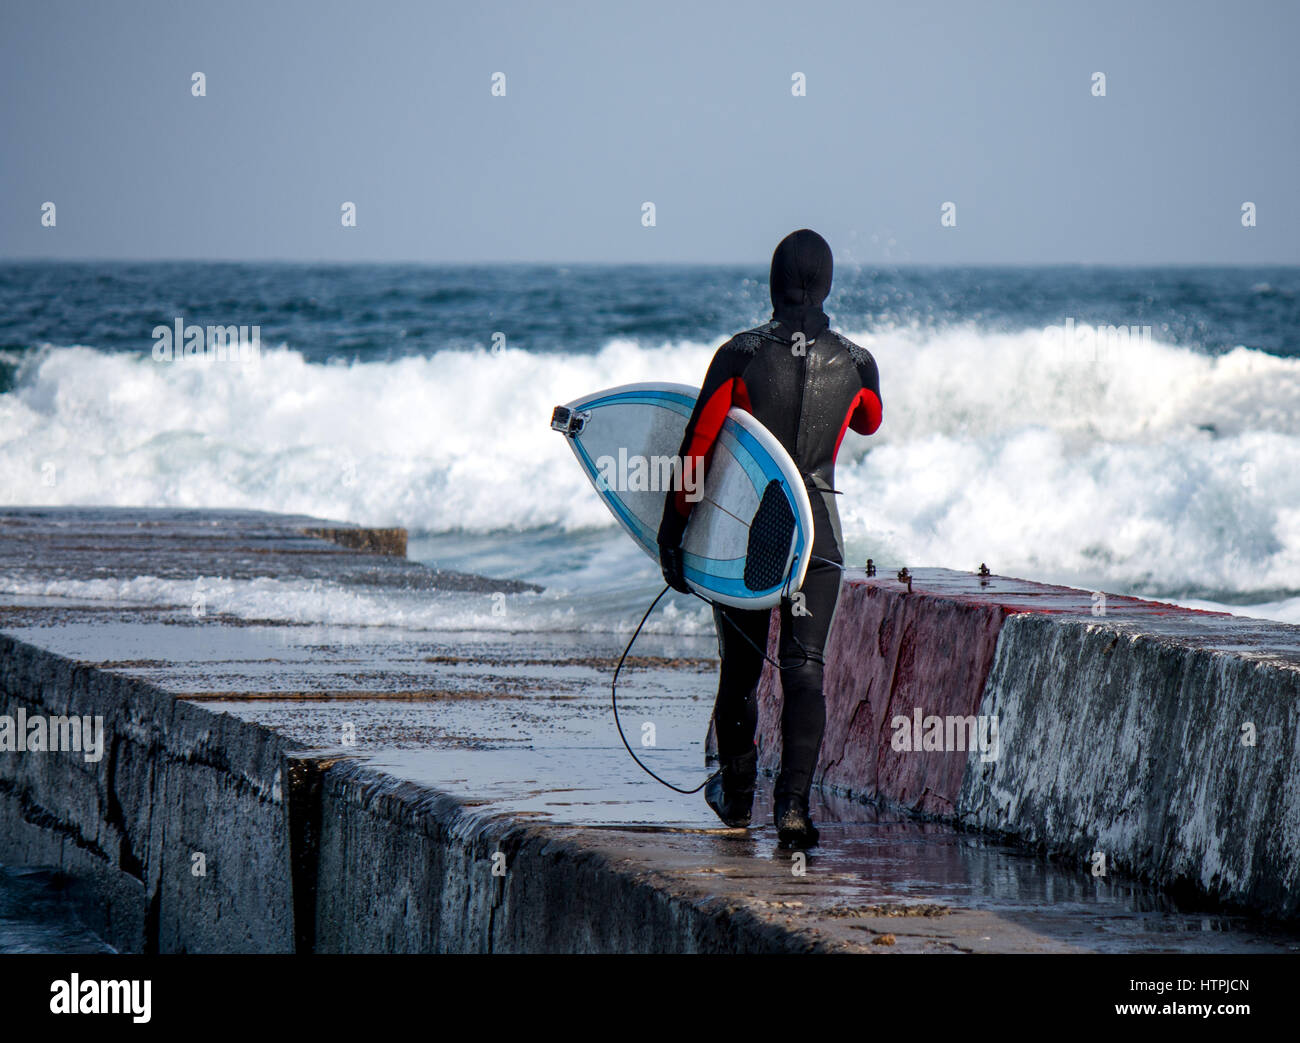 Surfer walks into water wearing a wetsuit in winter. Cold surfing. Wave splash. waterproof suit Stock Photo